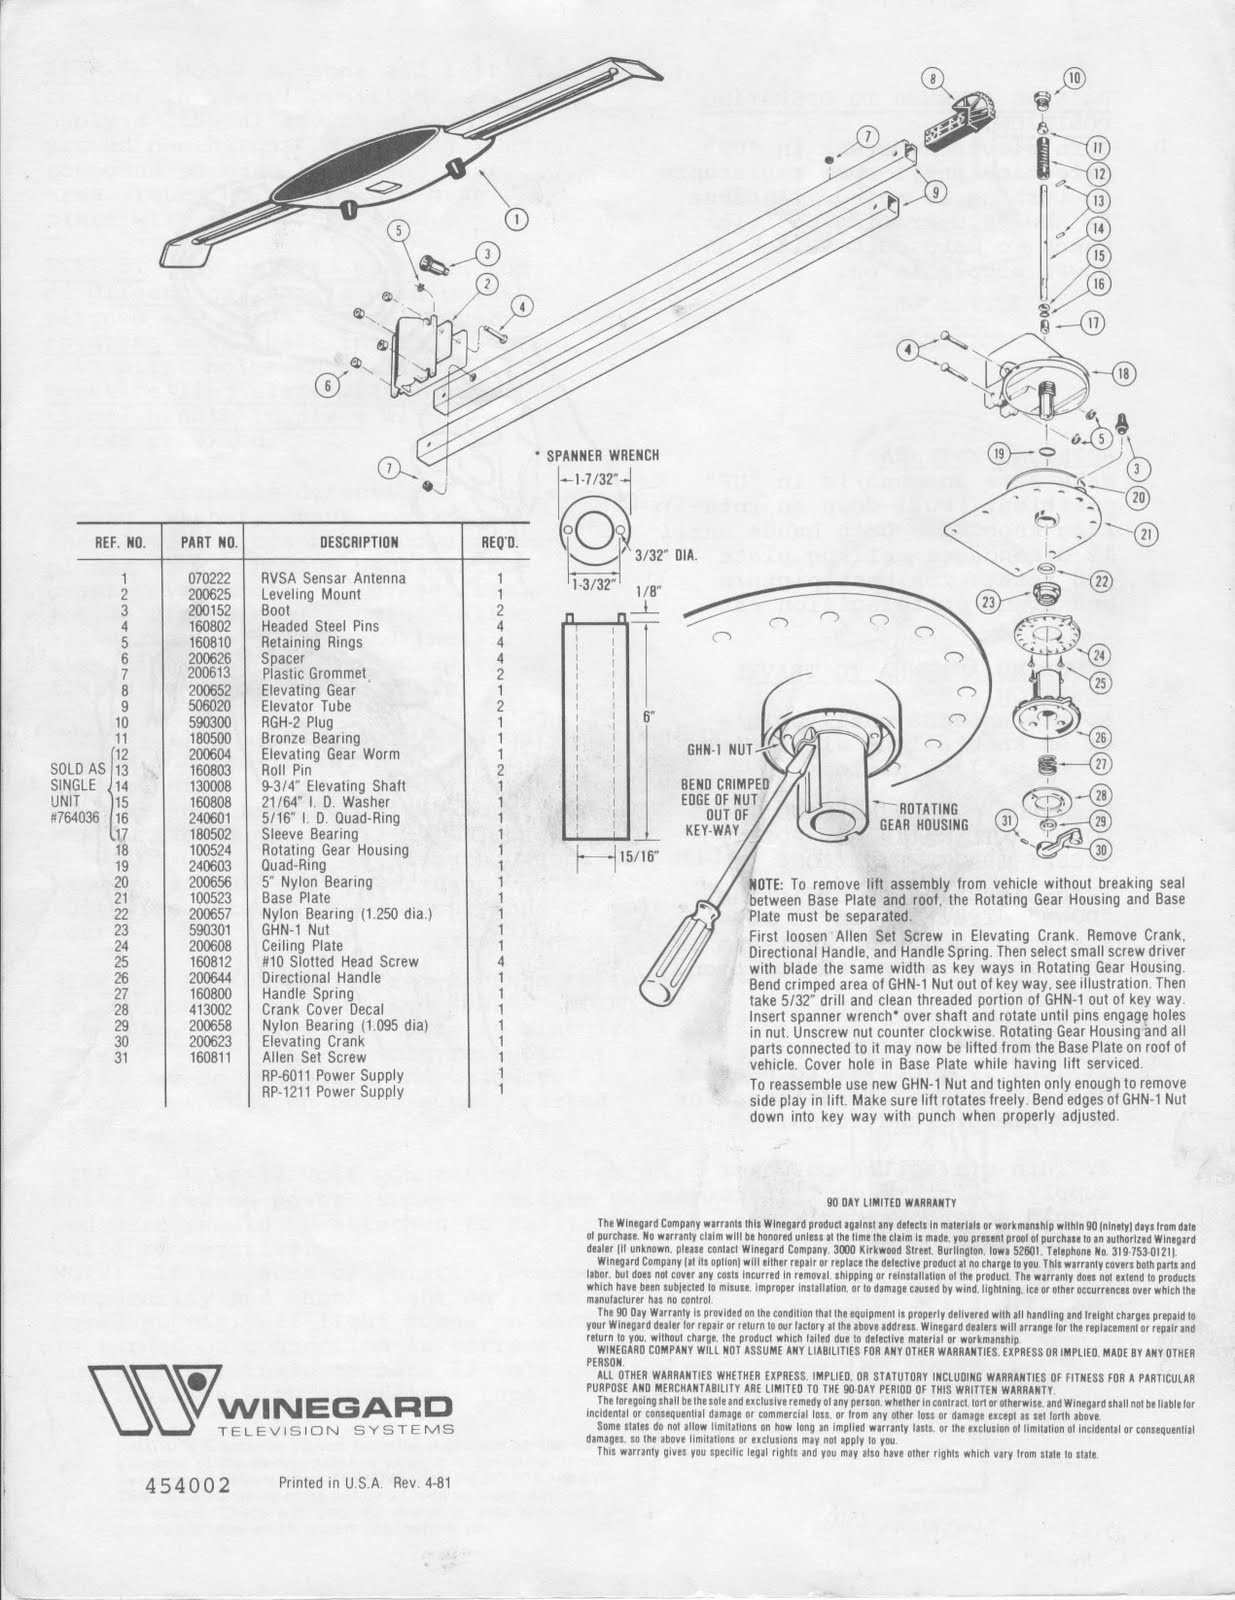 Winegard Satellite Wiring Diagram | Wiring Library